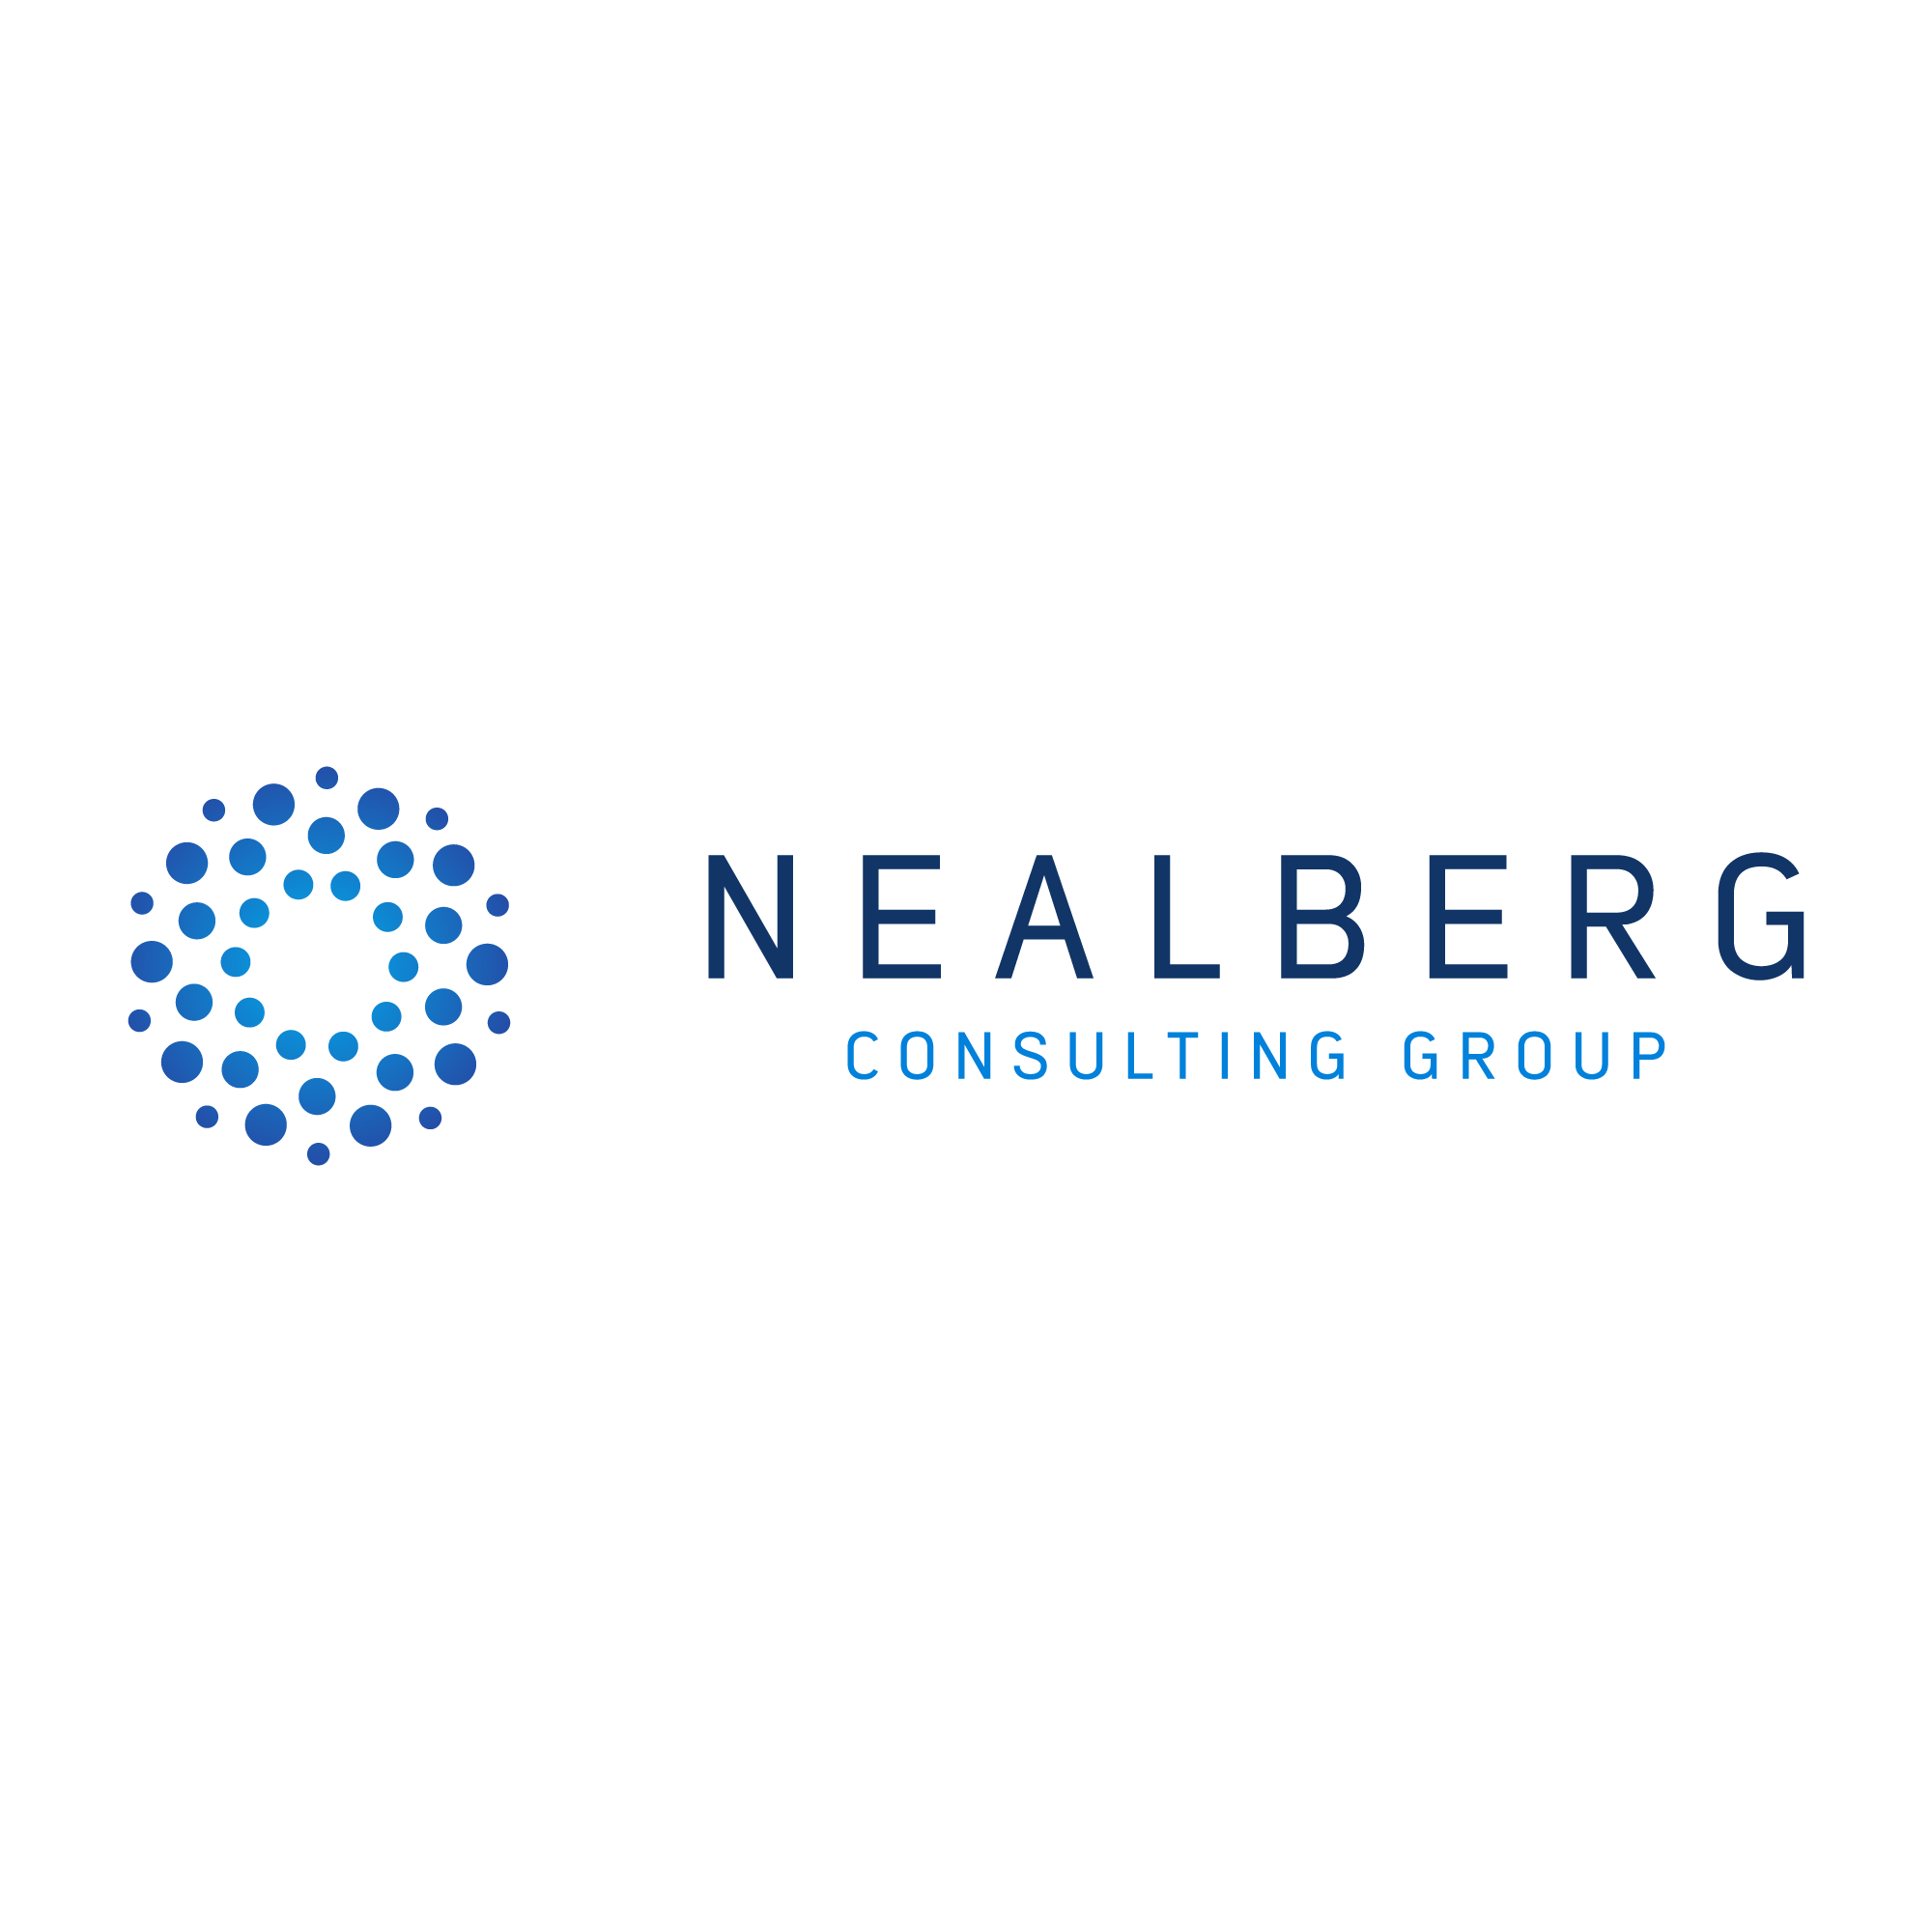 Nealberg Launches Consulting Services for Florida Professional Organizations Transitioning to an Online Format During the COVID-19 Pandemic